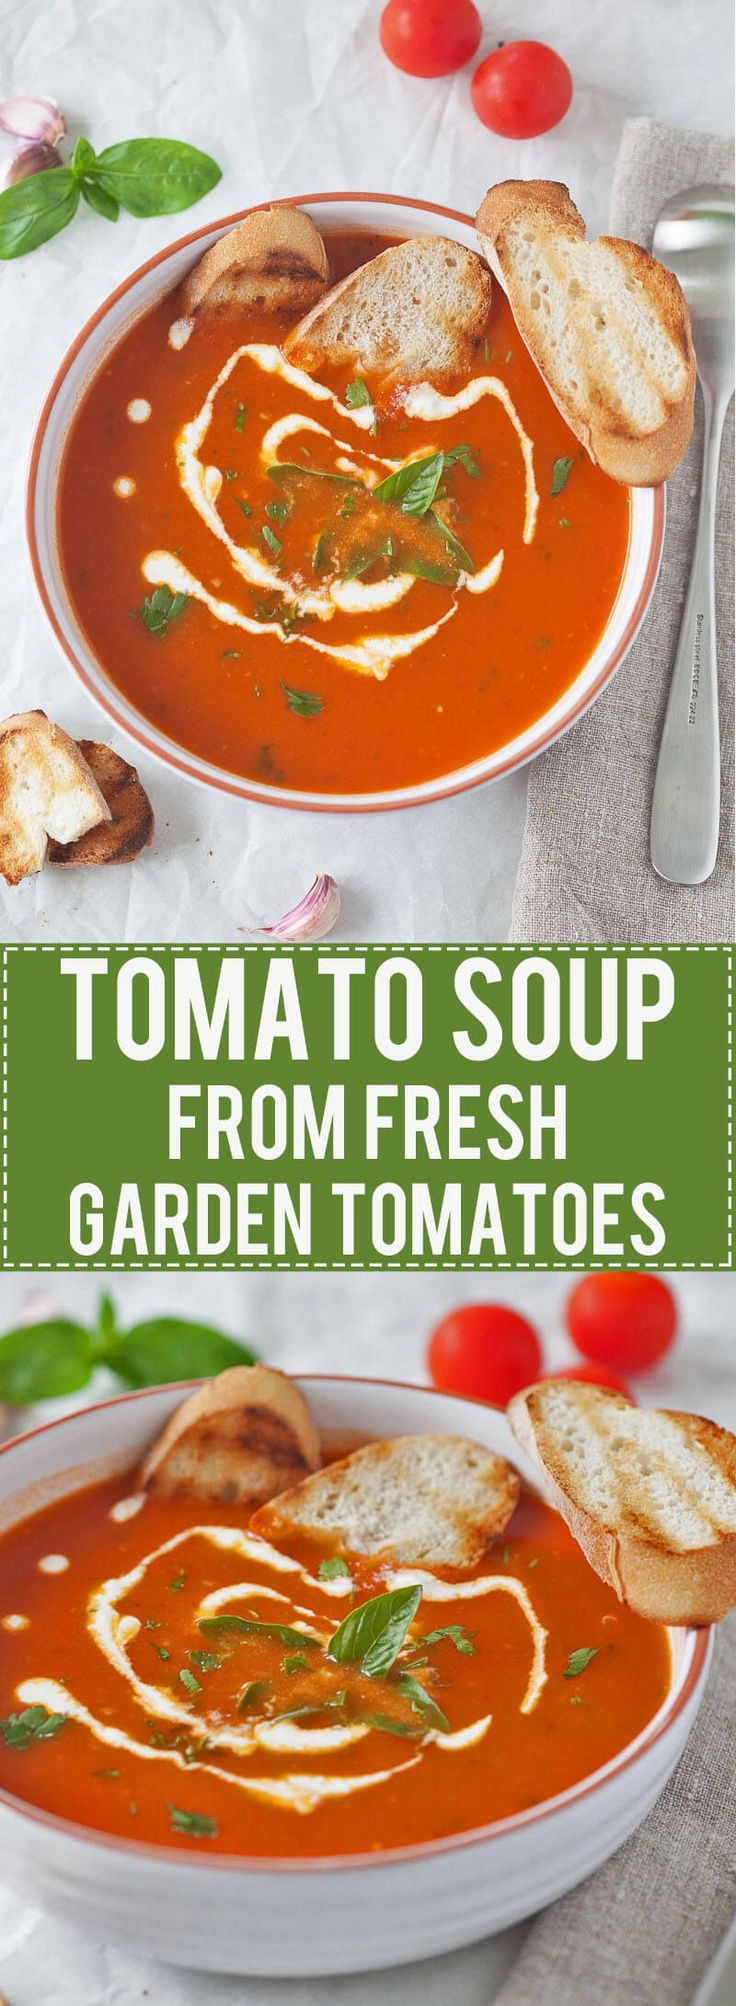 Simply amazing Tomato Soup from Fresh Ripe Tomatoes is delicious. Just 15 minutes and a couple of ingredients to make it, quick & easy! | www.vibrantplate.com